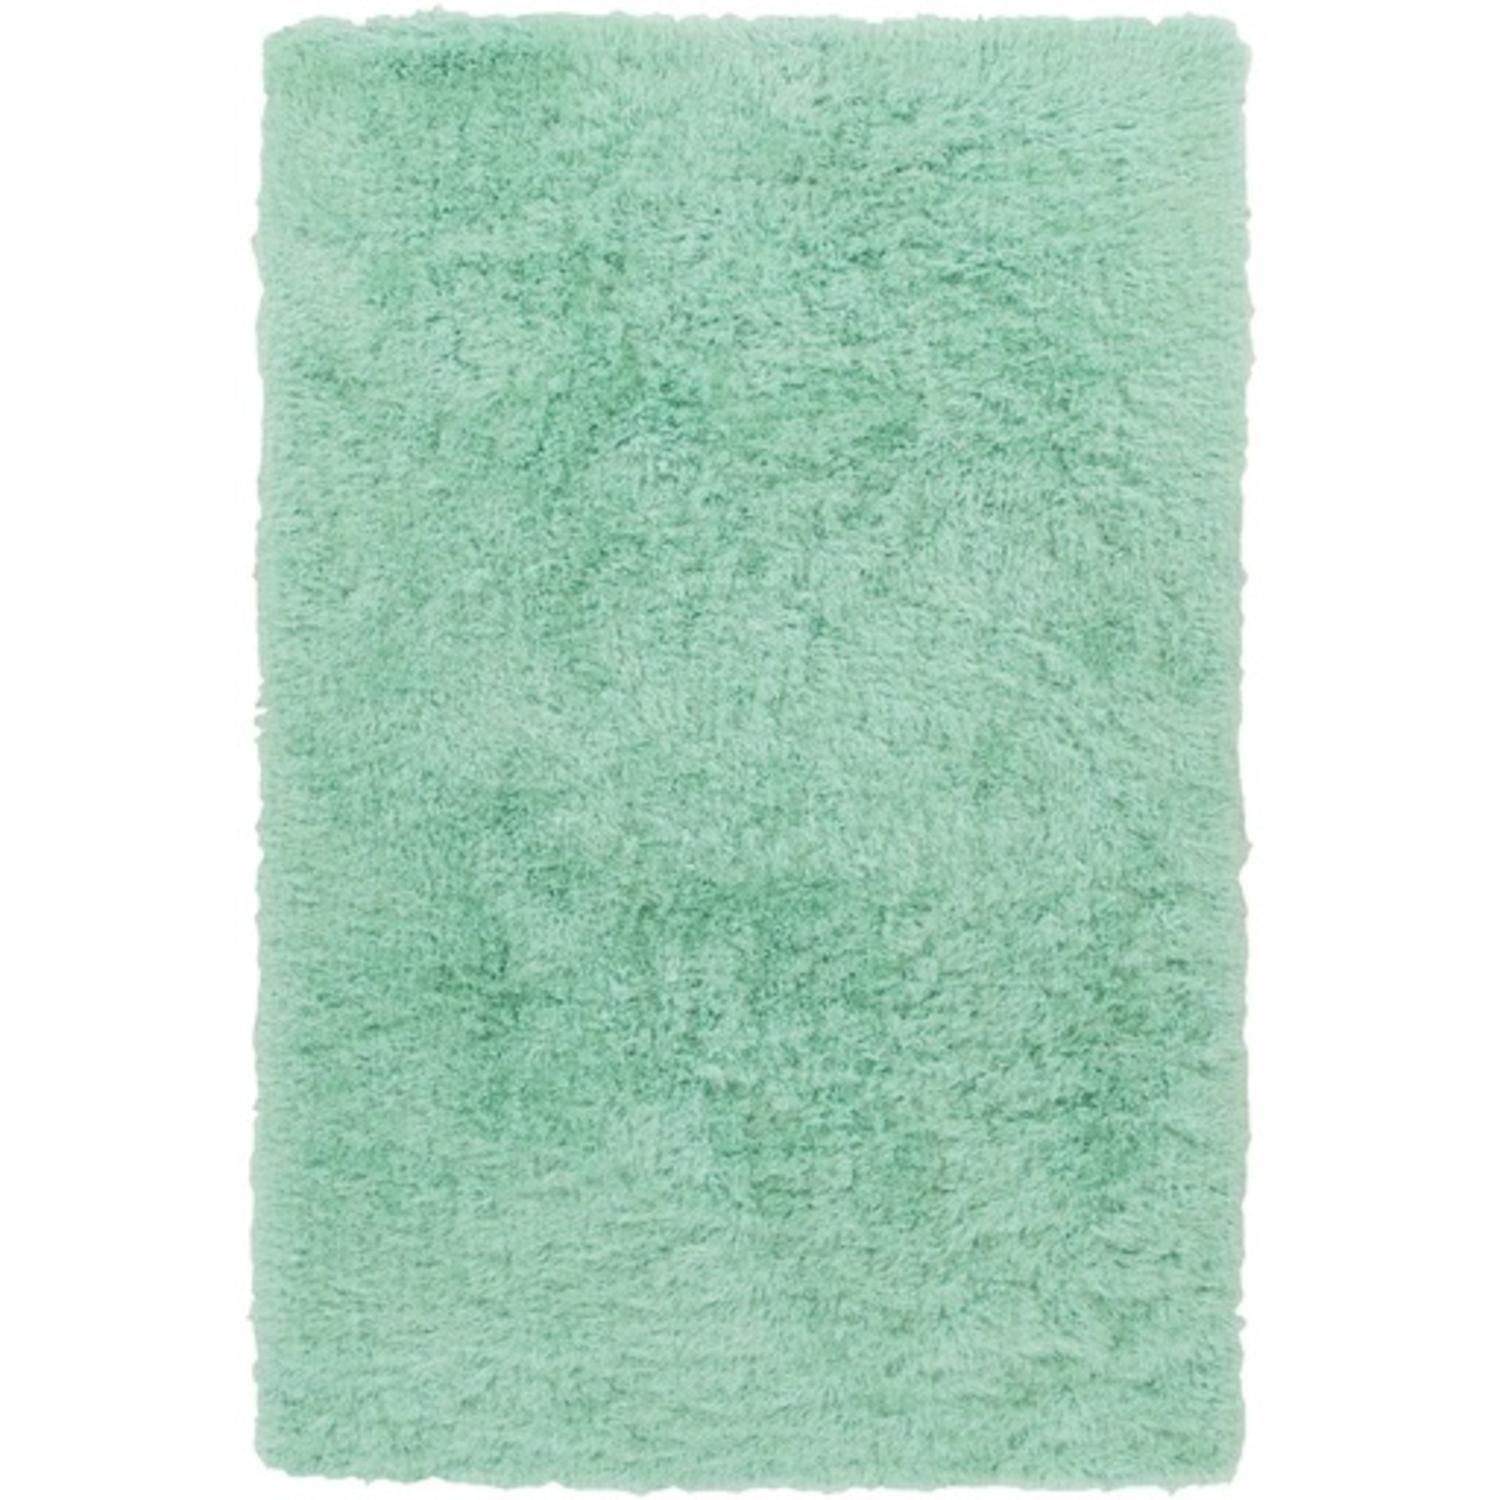 8 X 10 Fuzzy Fascination Naiad Green Hand Tufted Super